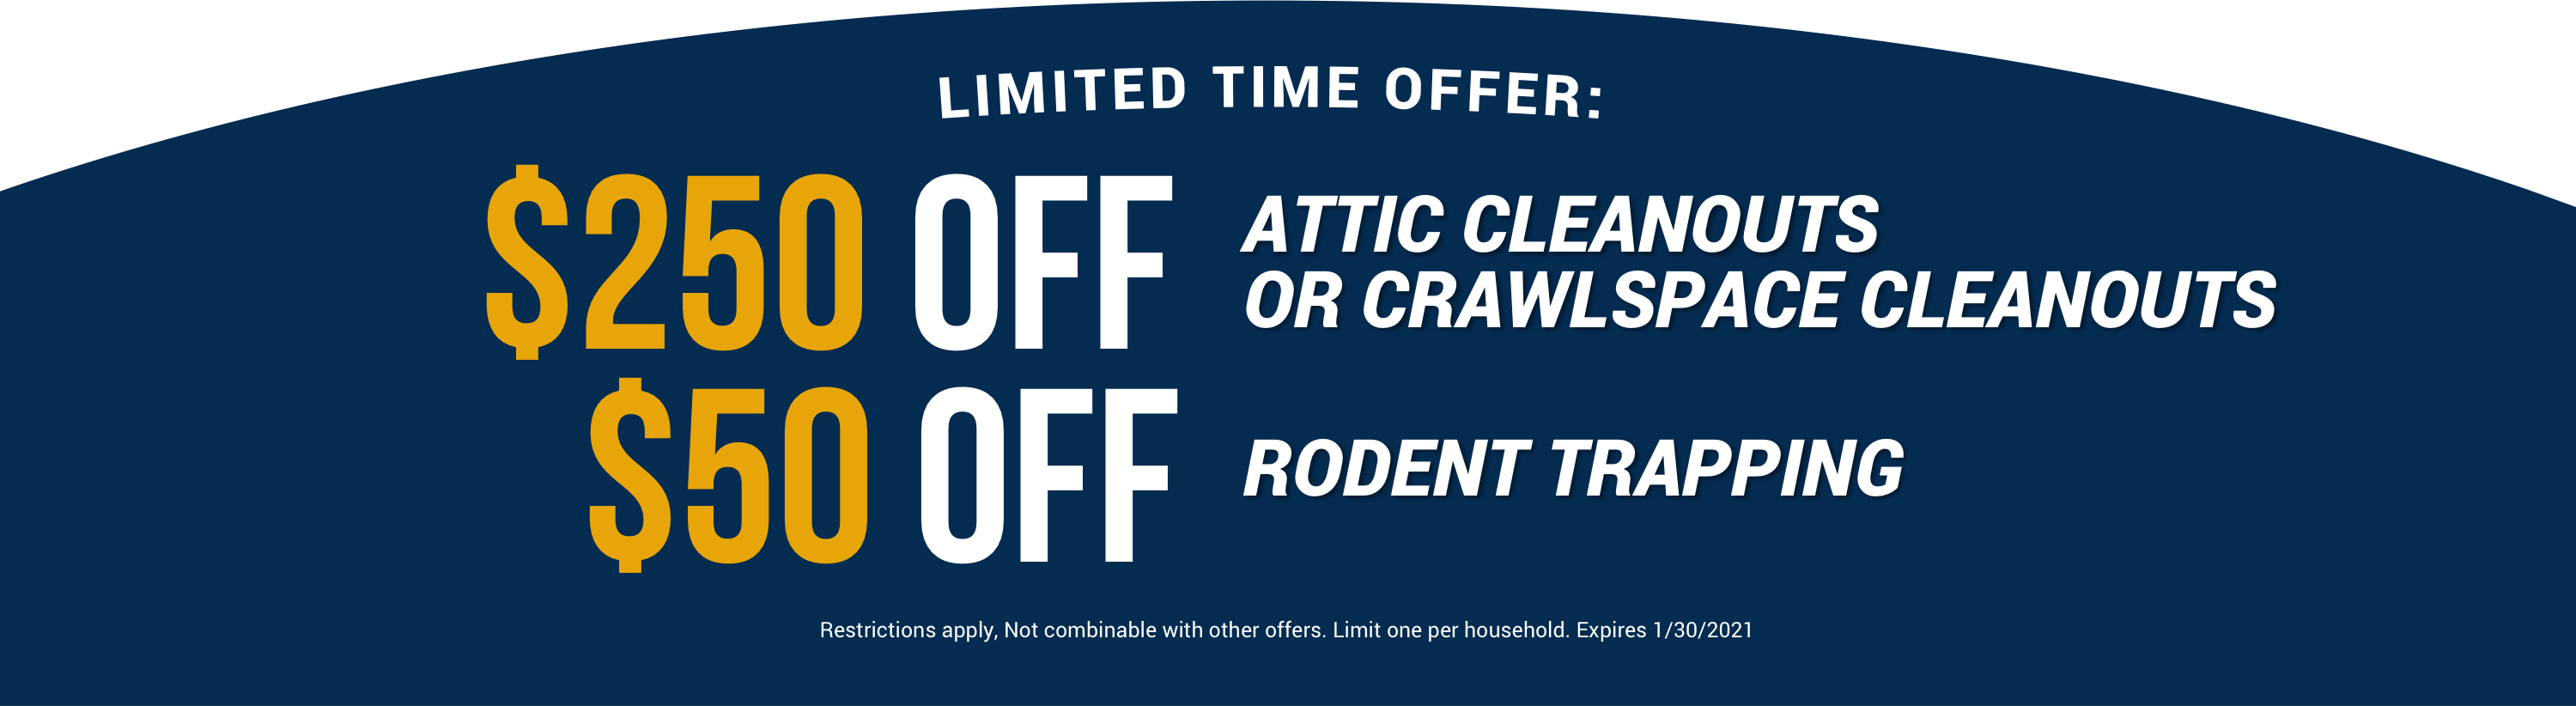 Attic Cleanouts, Crawlspace Cleanouts & Rodent Trapping Special Offer